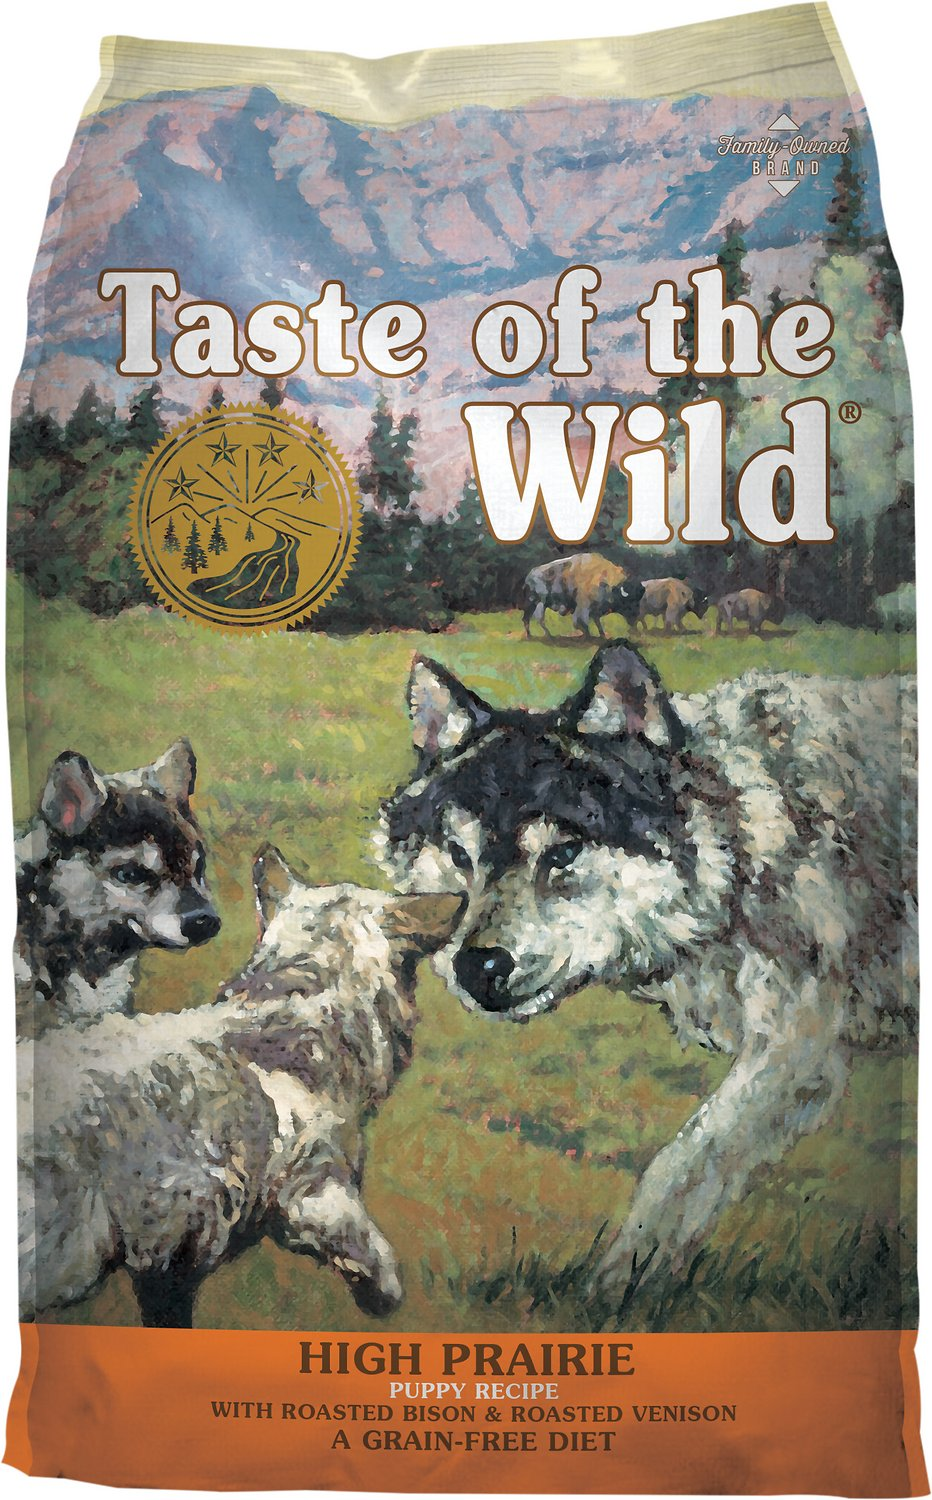 Taste Of The Wild Dog Food Reviews >> Taste of the Wild High Prairie Puppy Formula Grain-Free Dry Dog Food, 5-lb bag - Chewy.com